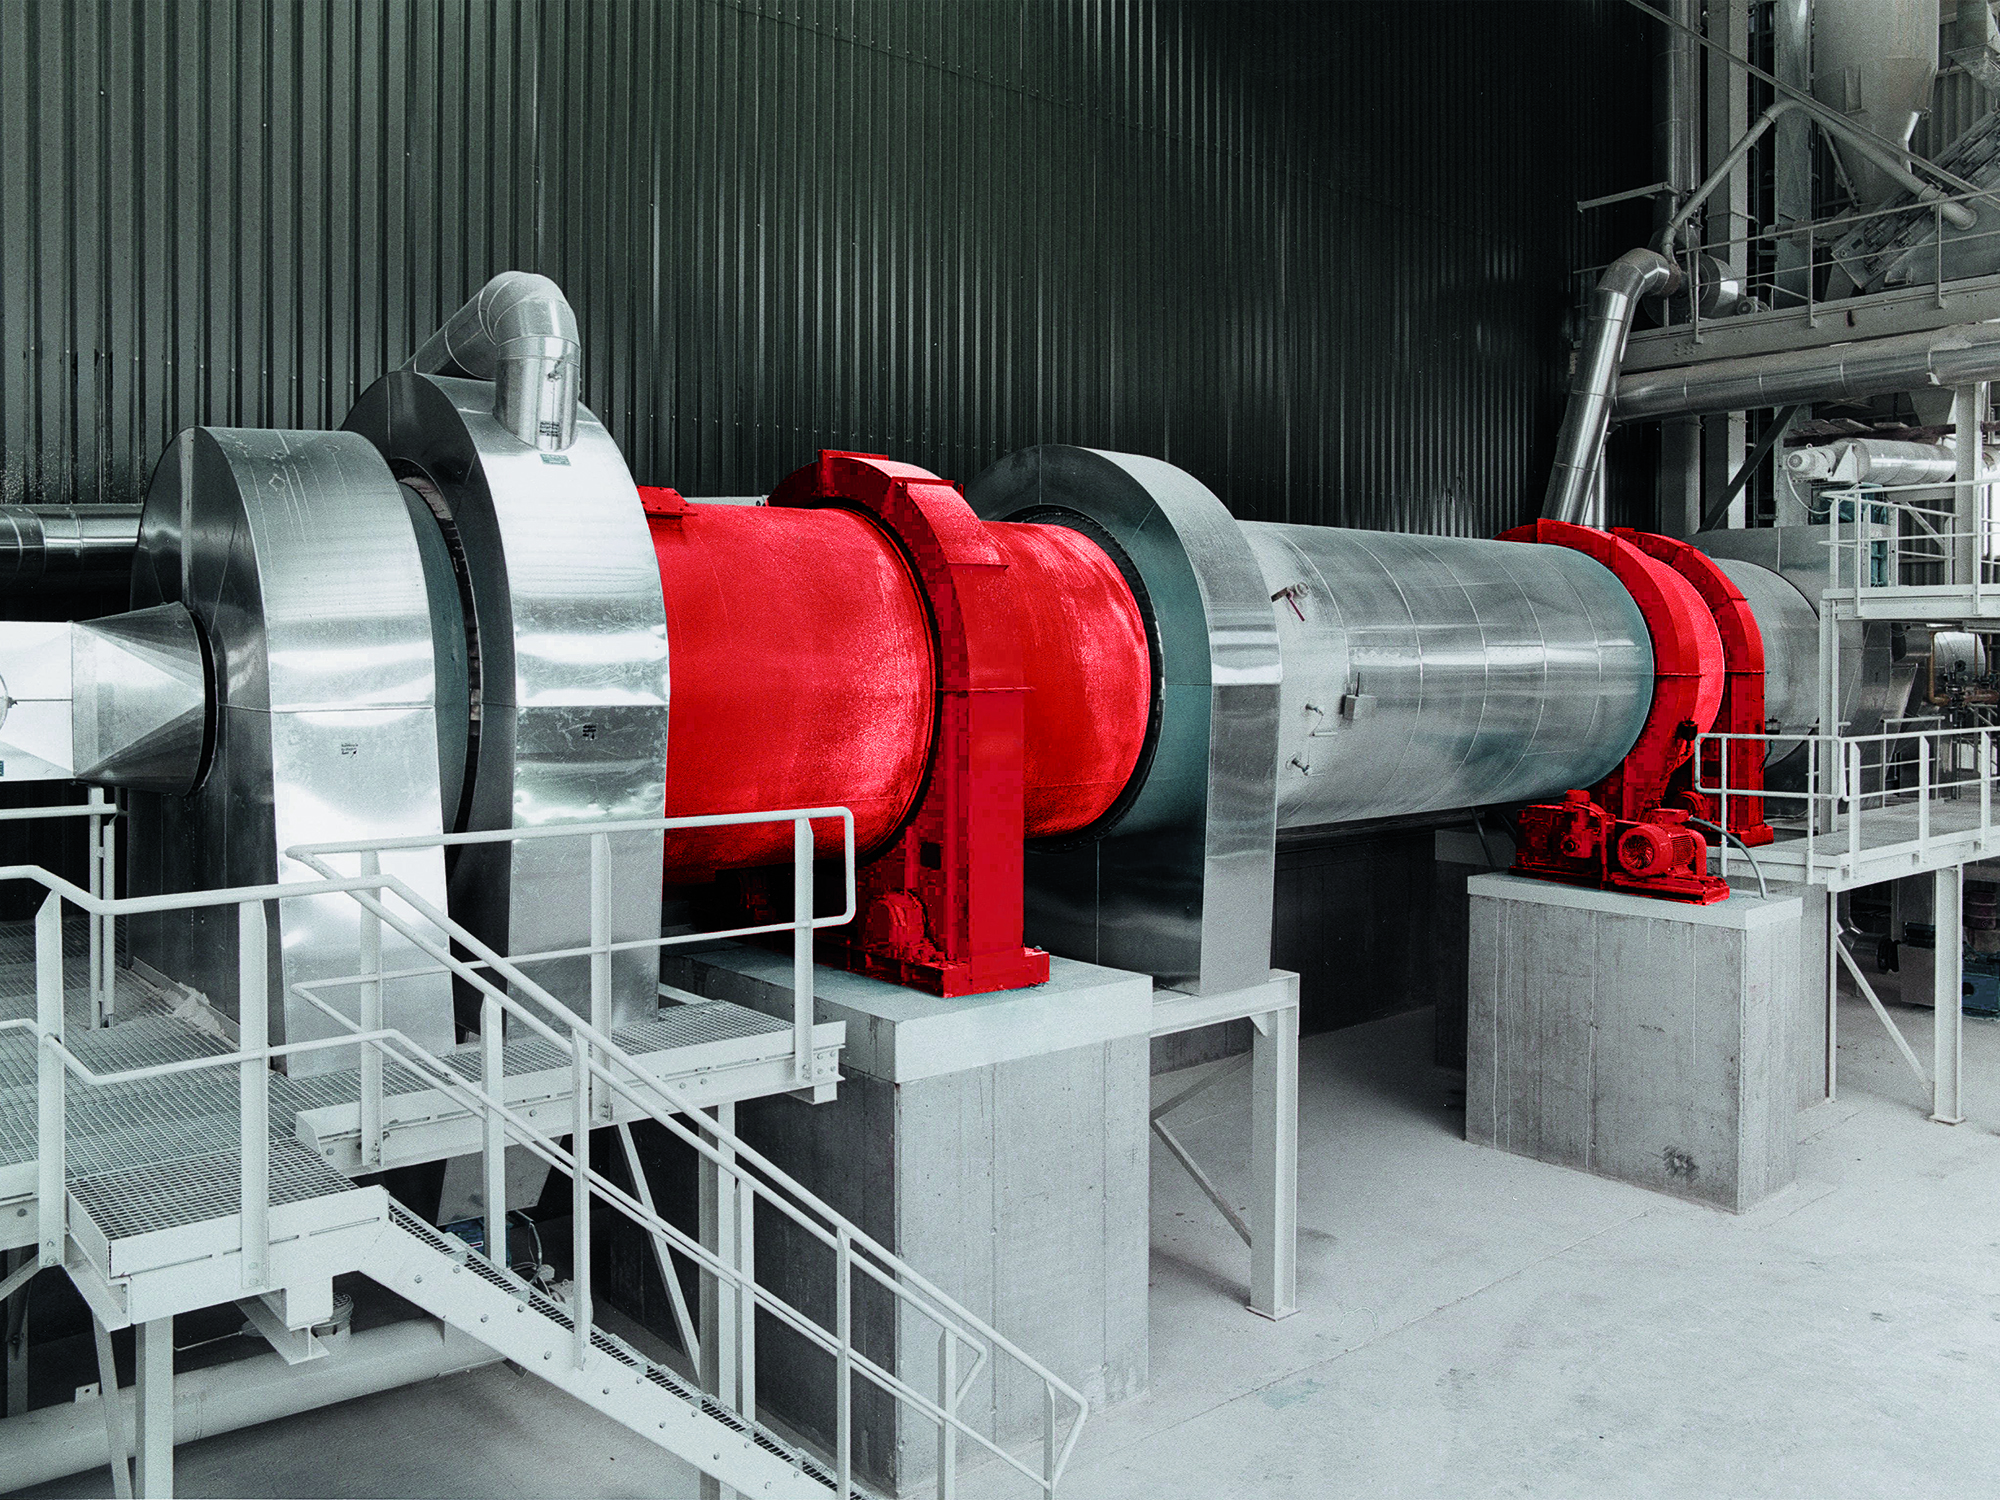 Wide range of calcining processes